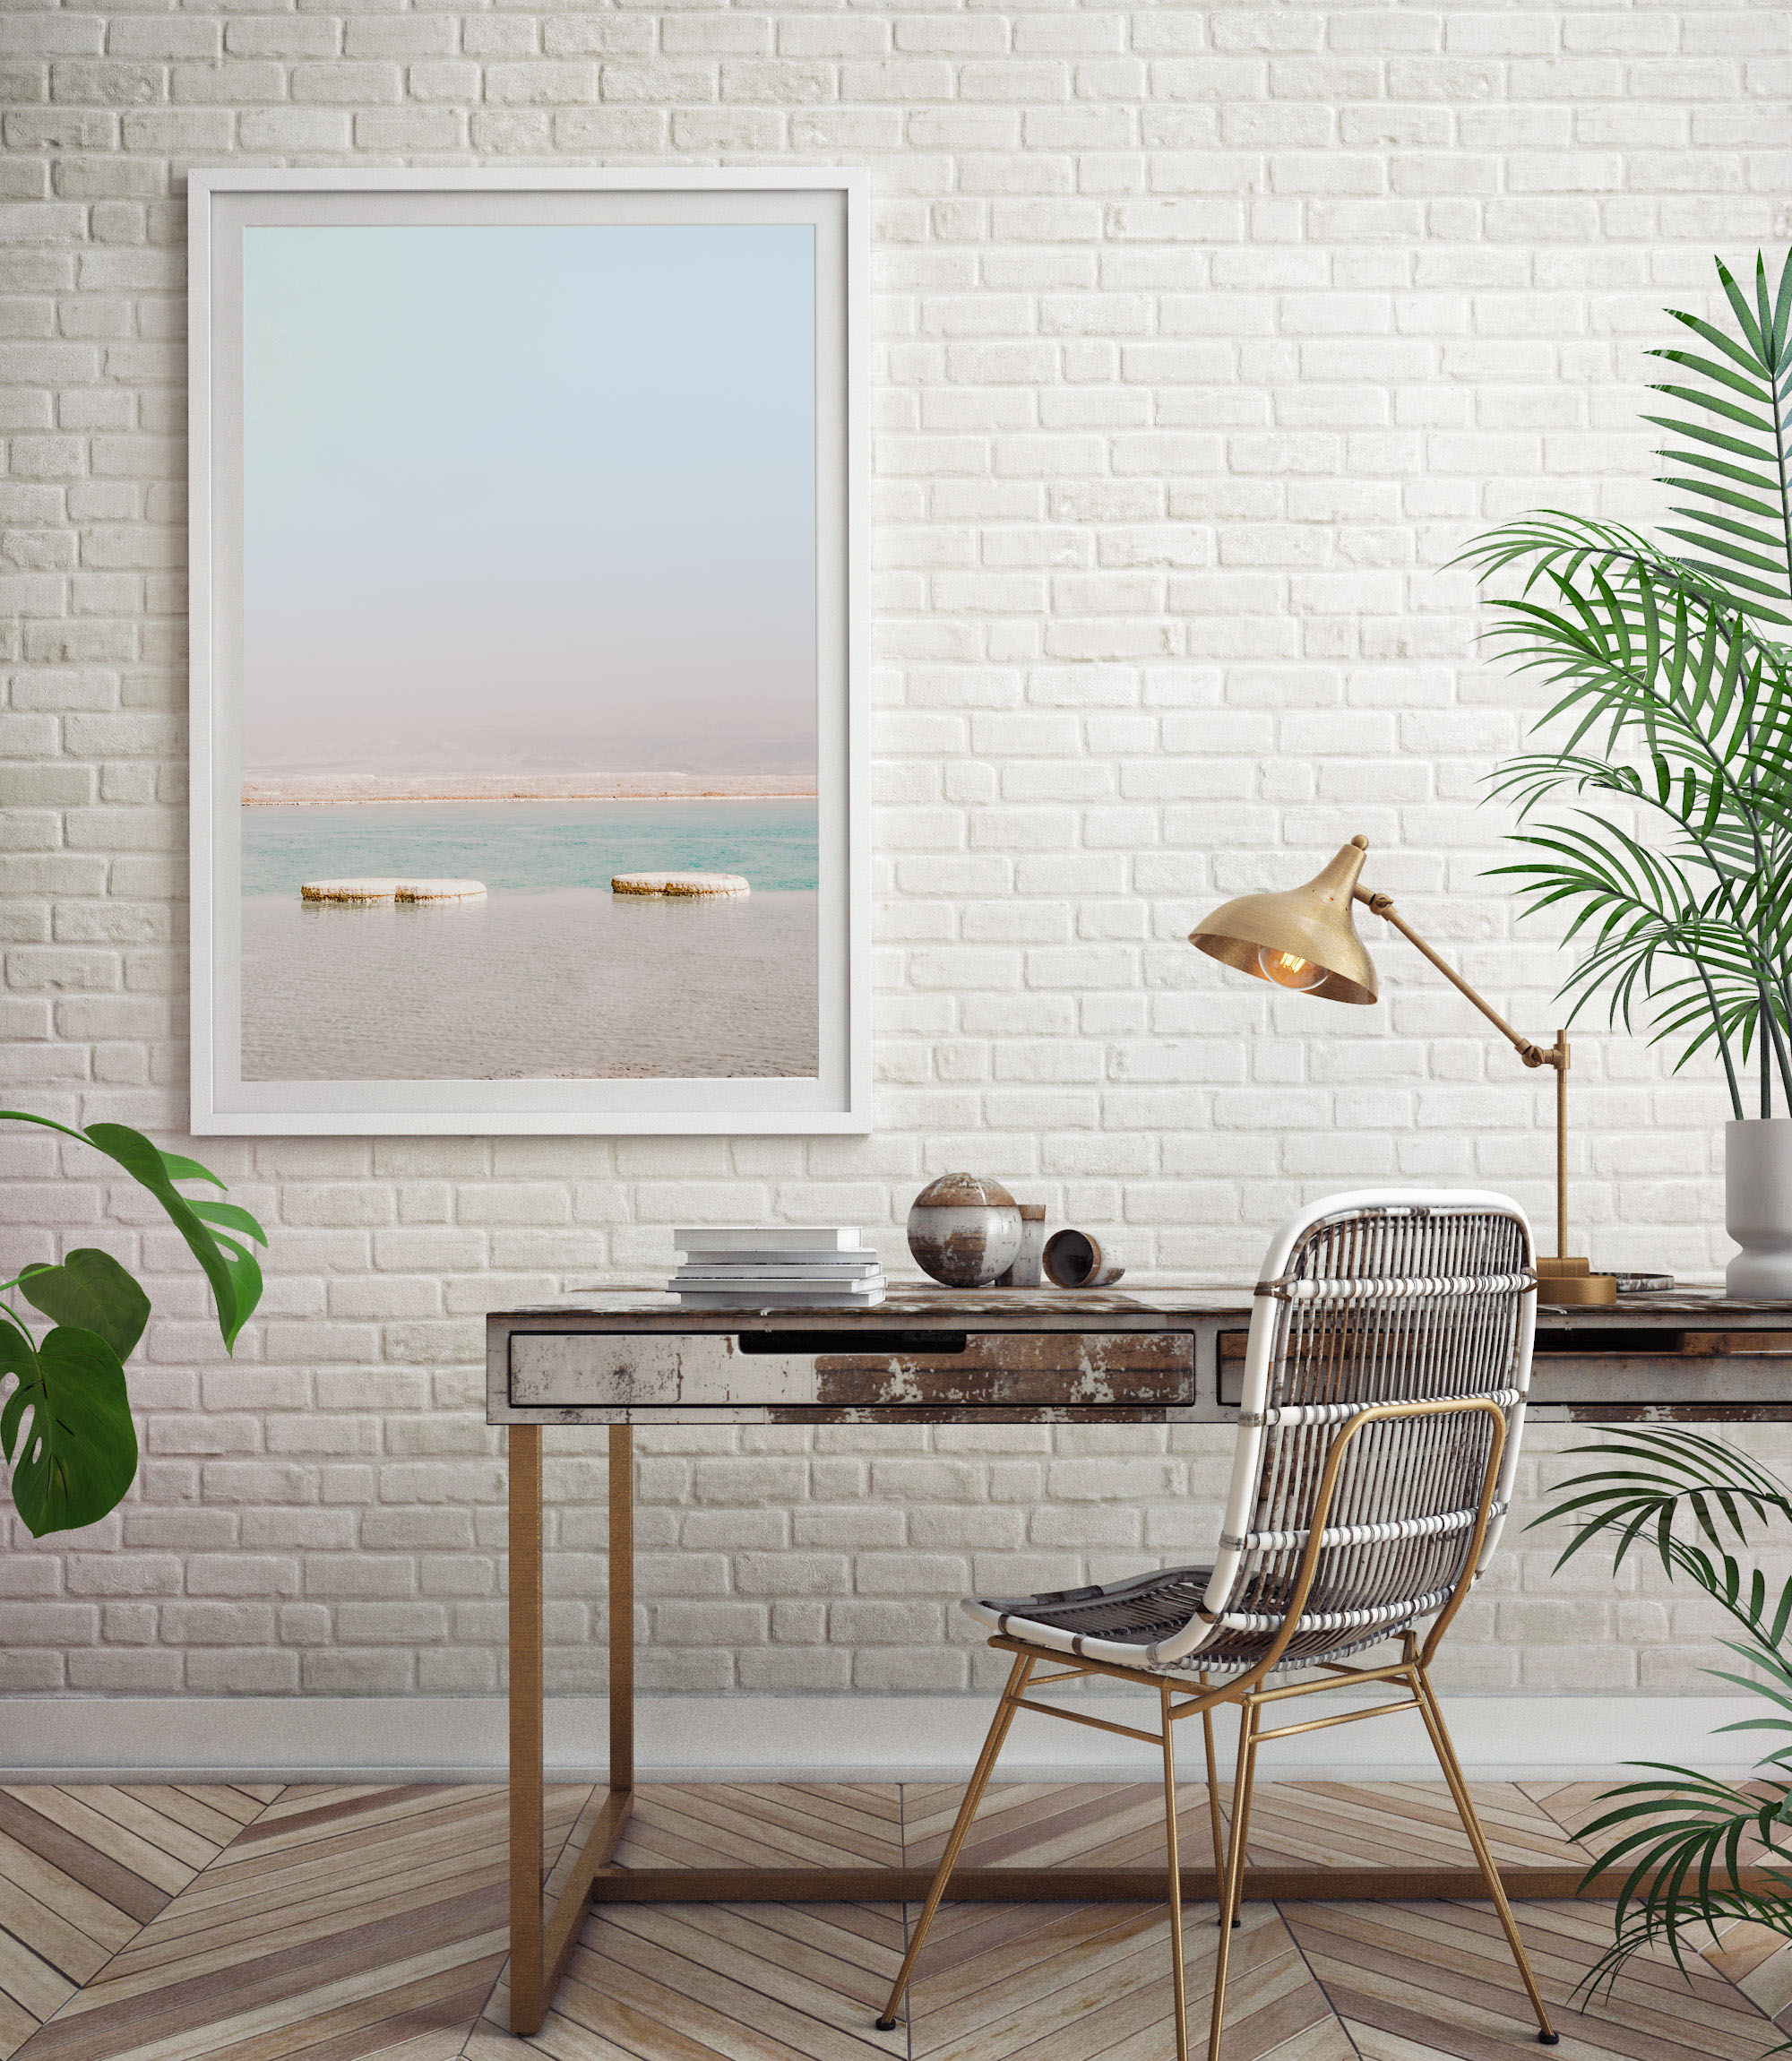 dead sea veritcal turquoise wall print 1